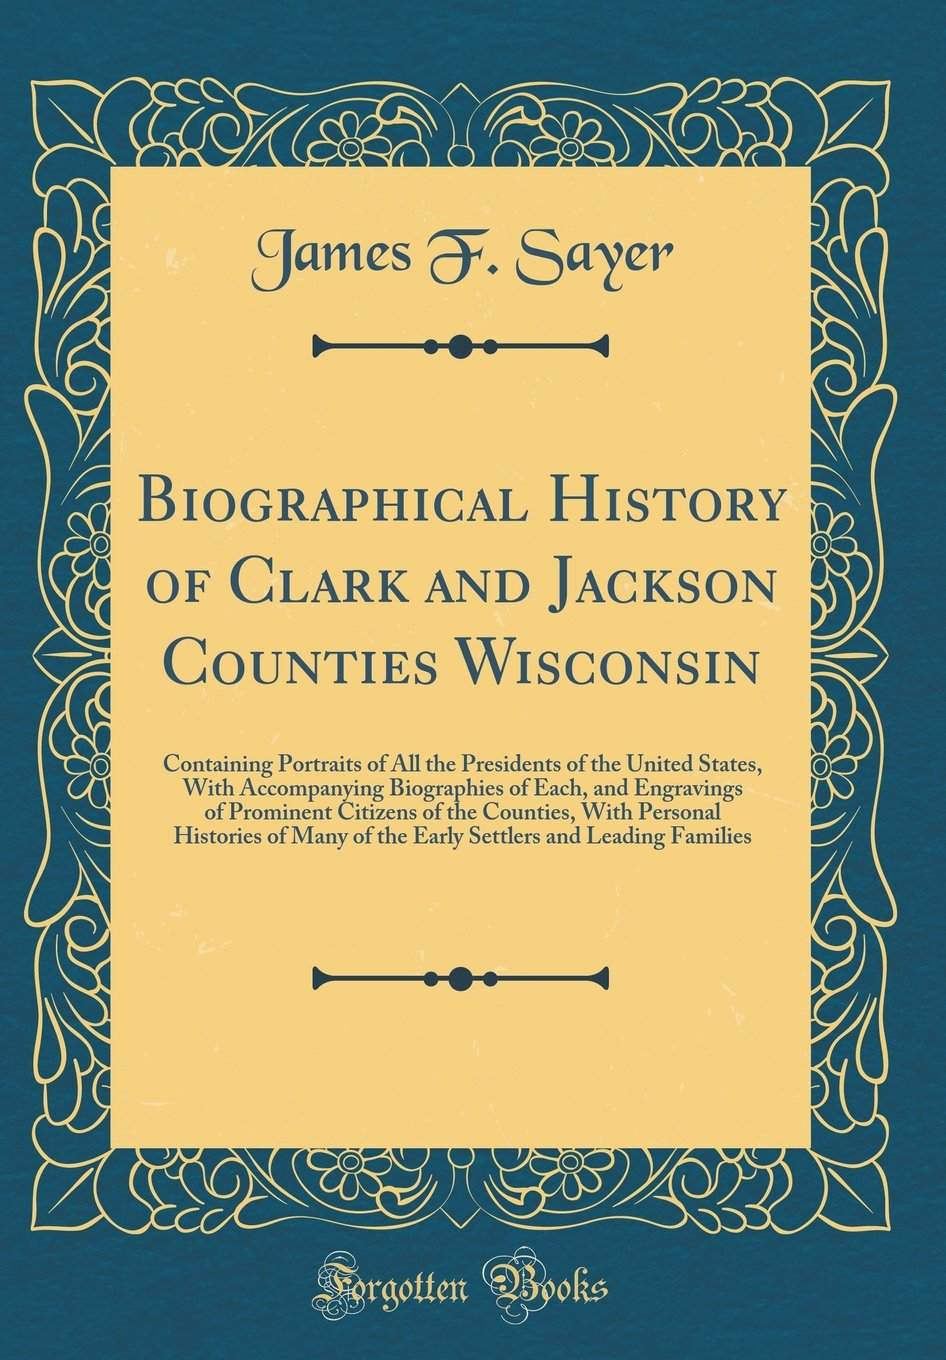 Biographical History of Clark and Jackson Counties Wisconsin: Containing Portraits of All the Presidents of the United States, With Accompanying ... Counties, With Personal Histories of Many of PDF